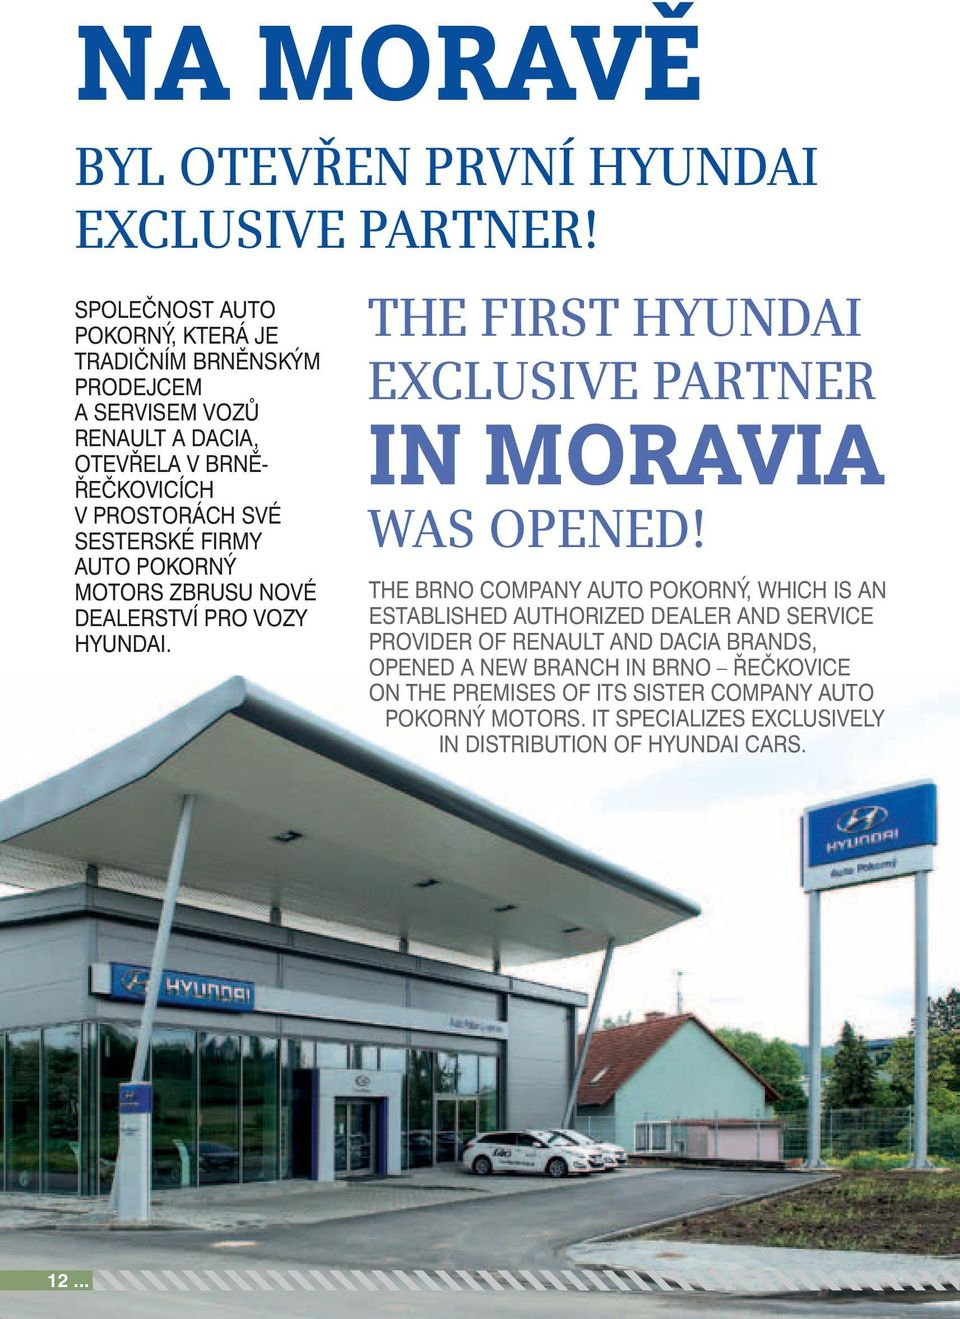 firmy Auto Pokorný Motors zbrusu nové dealerství pro vozy Hyundai. The First Hyundai Exclusive Partner in Moravia was opened!